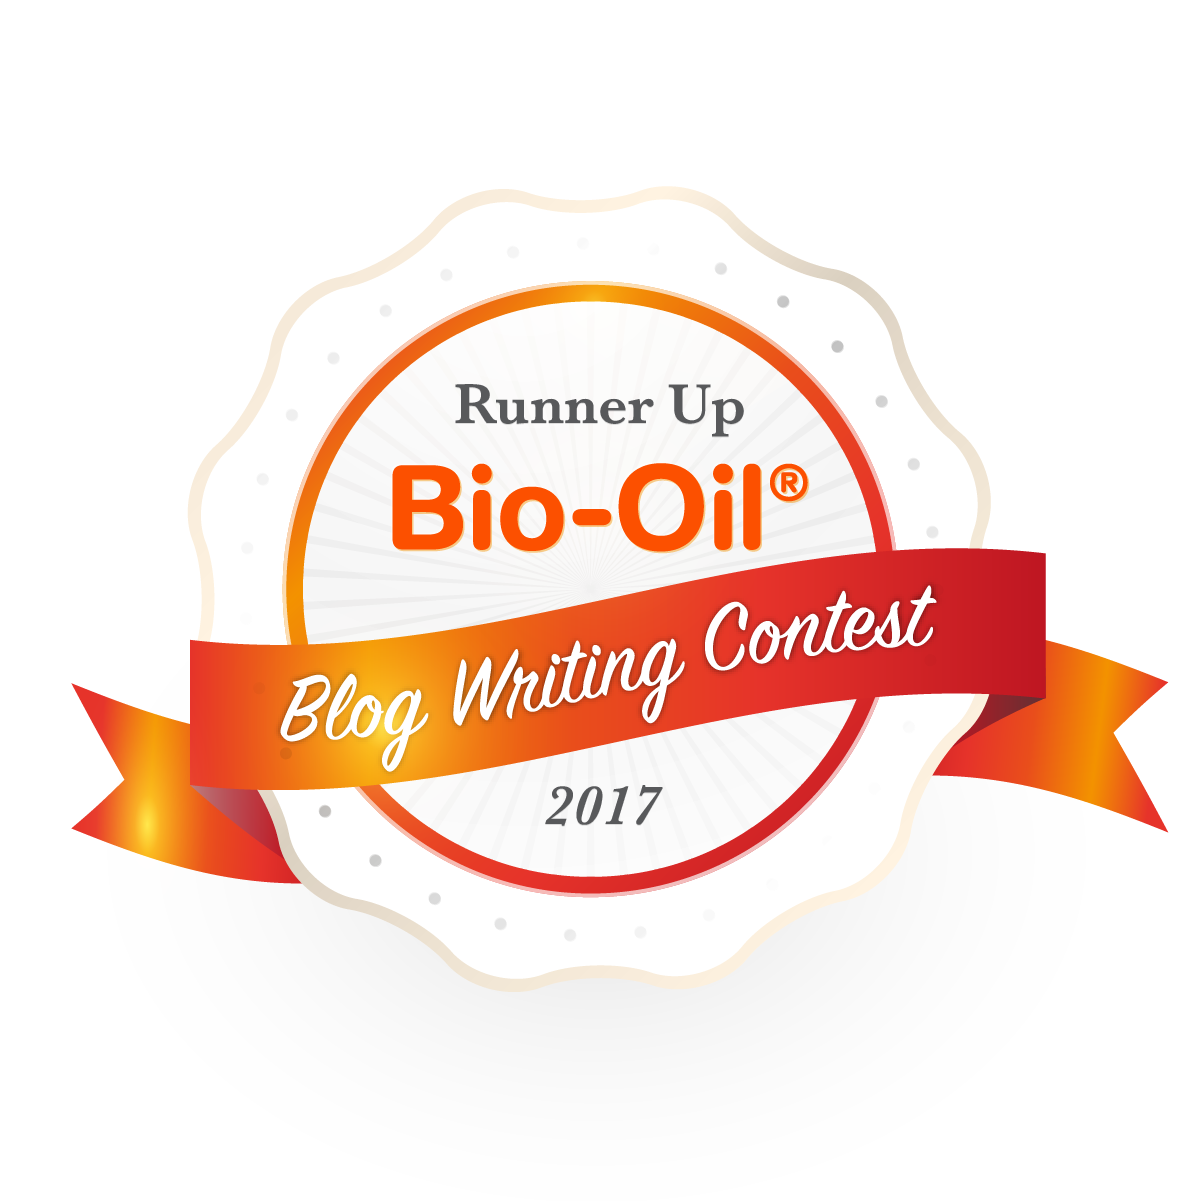 Runner Up Bio Oil Blog Writing Competition 2017